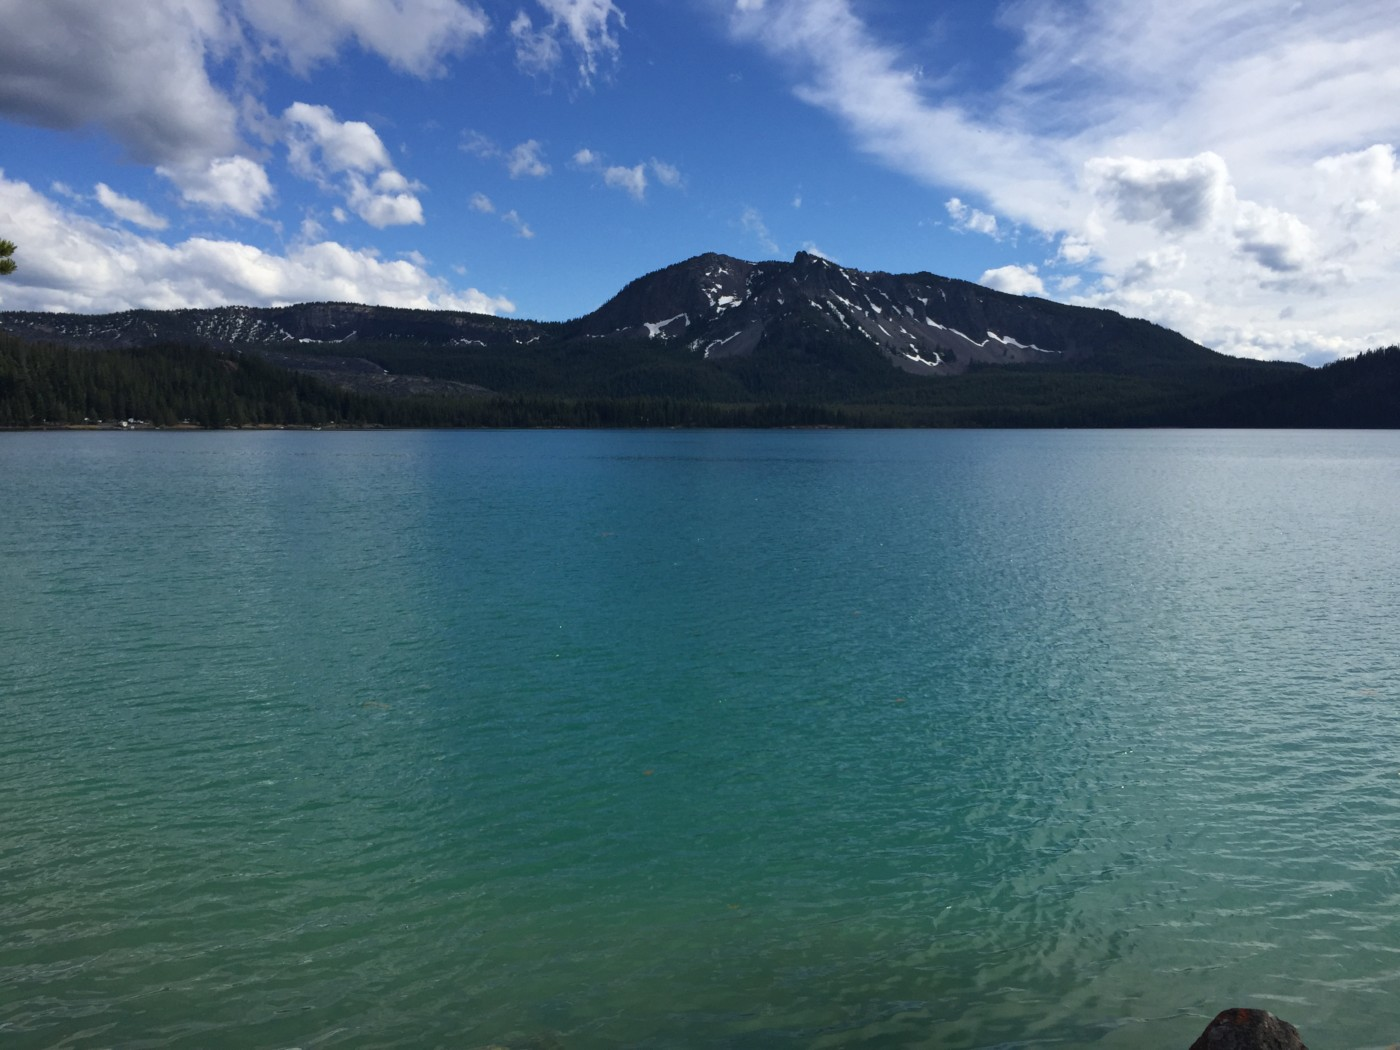 Camping at Paulina Lake and hiking the Newberry Caldera: Visiting an active volcano